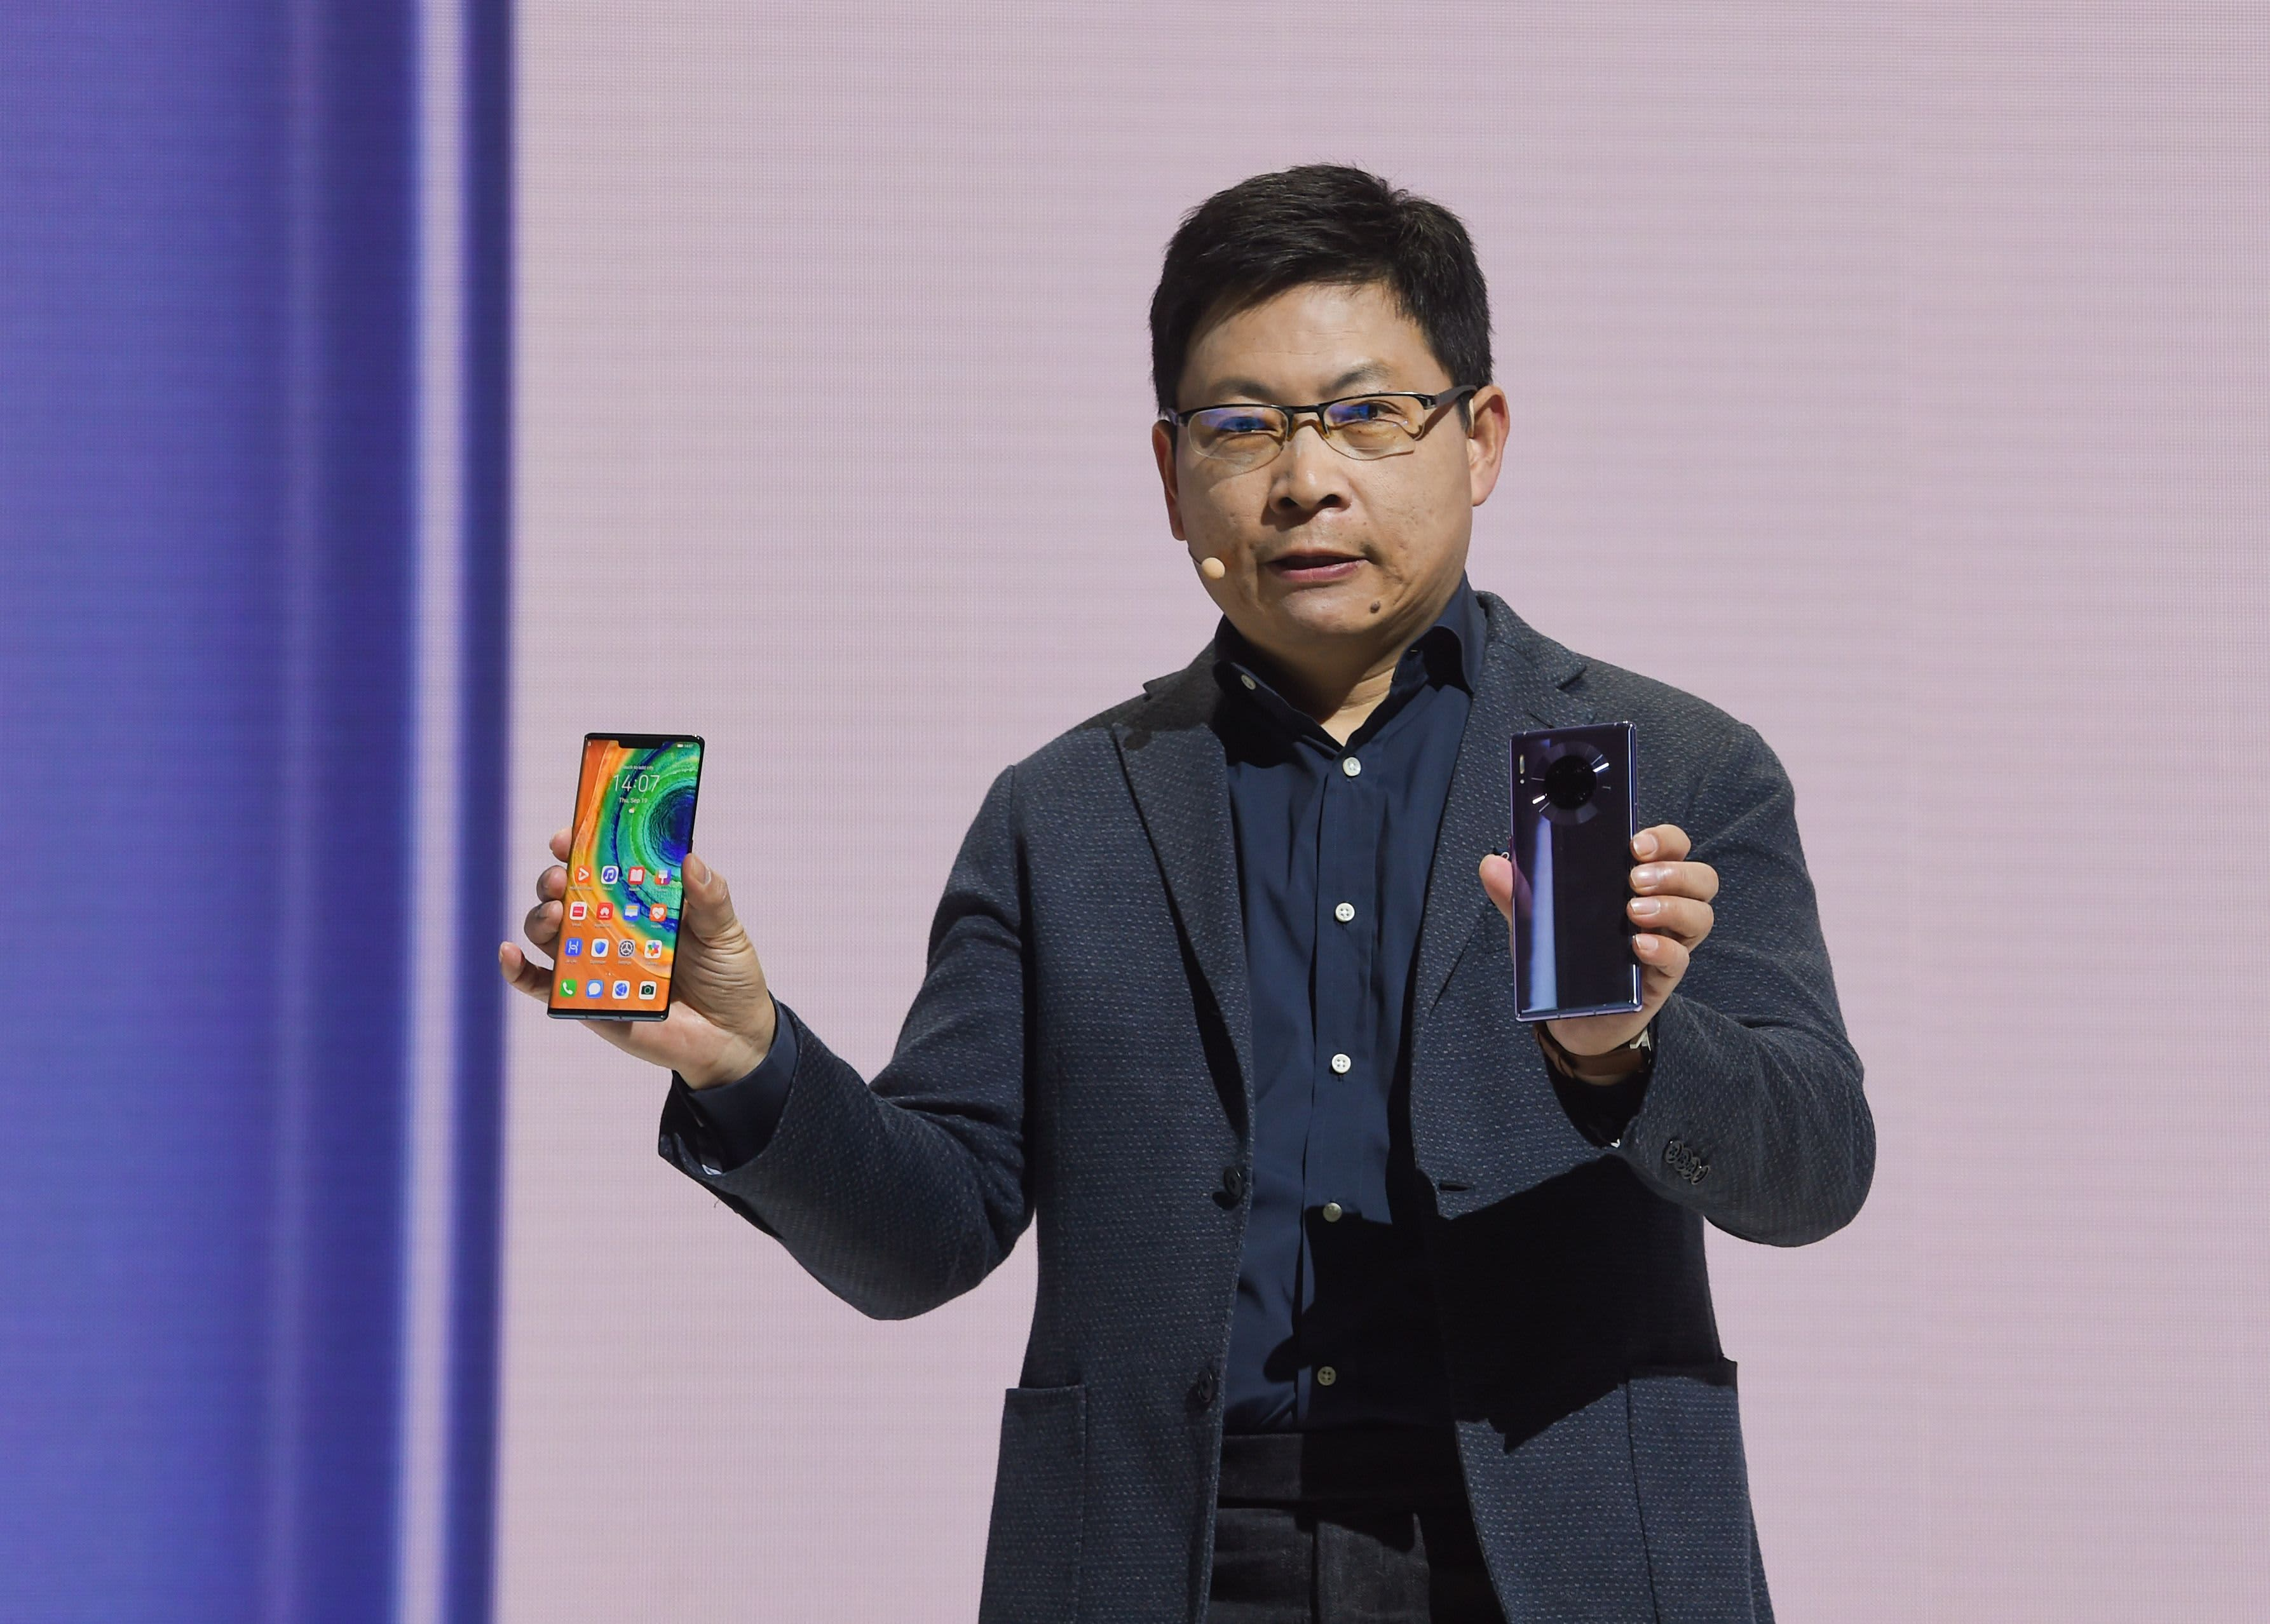 Huawei unveils its new 5G flagship phone without Google-licensed apps